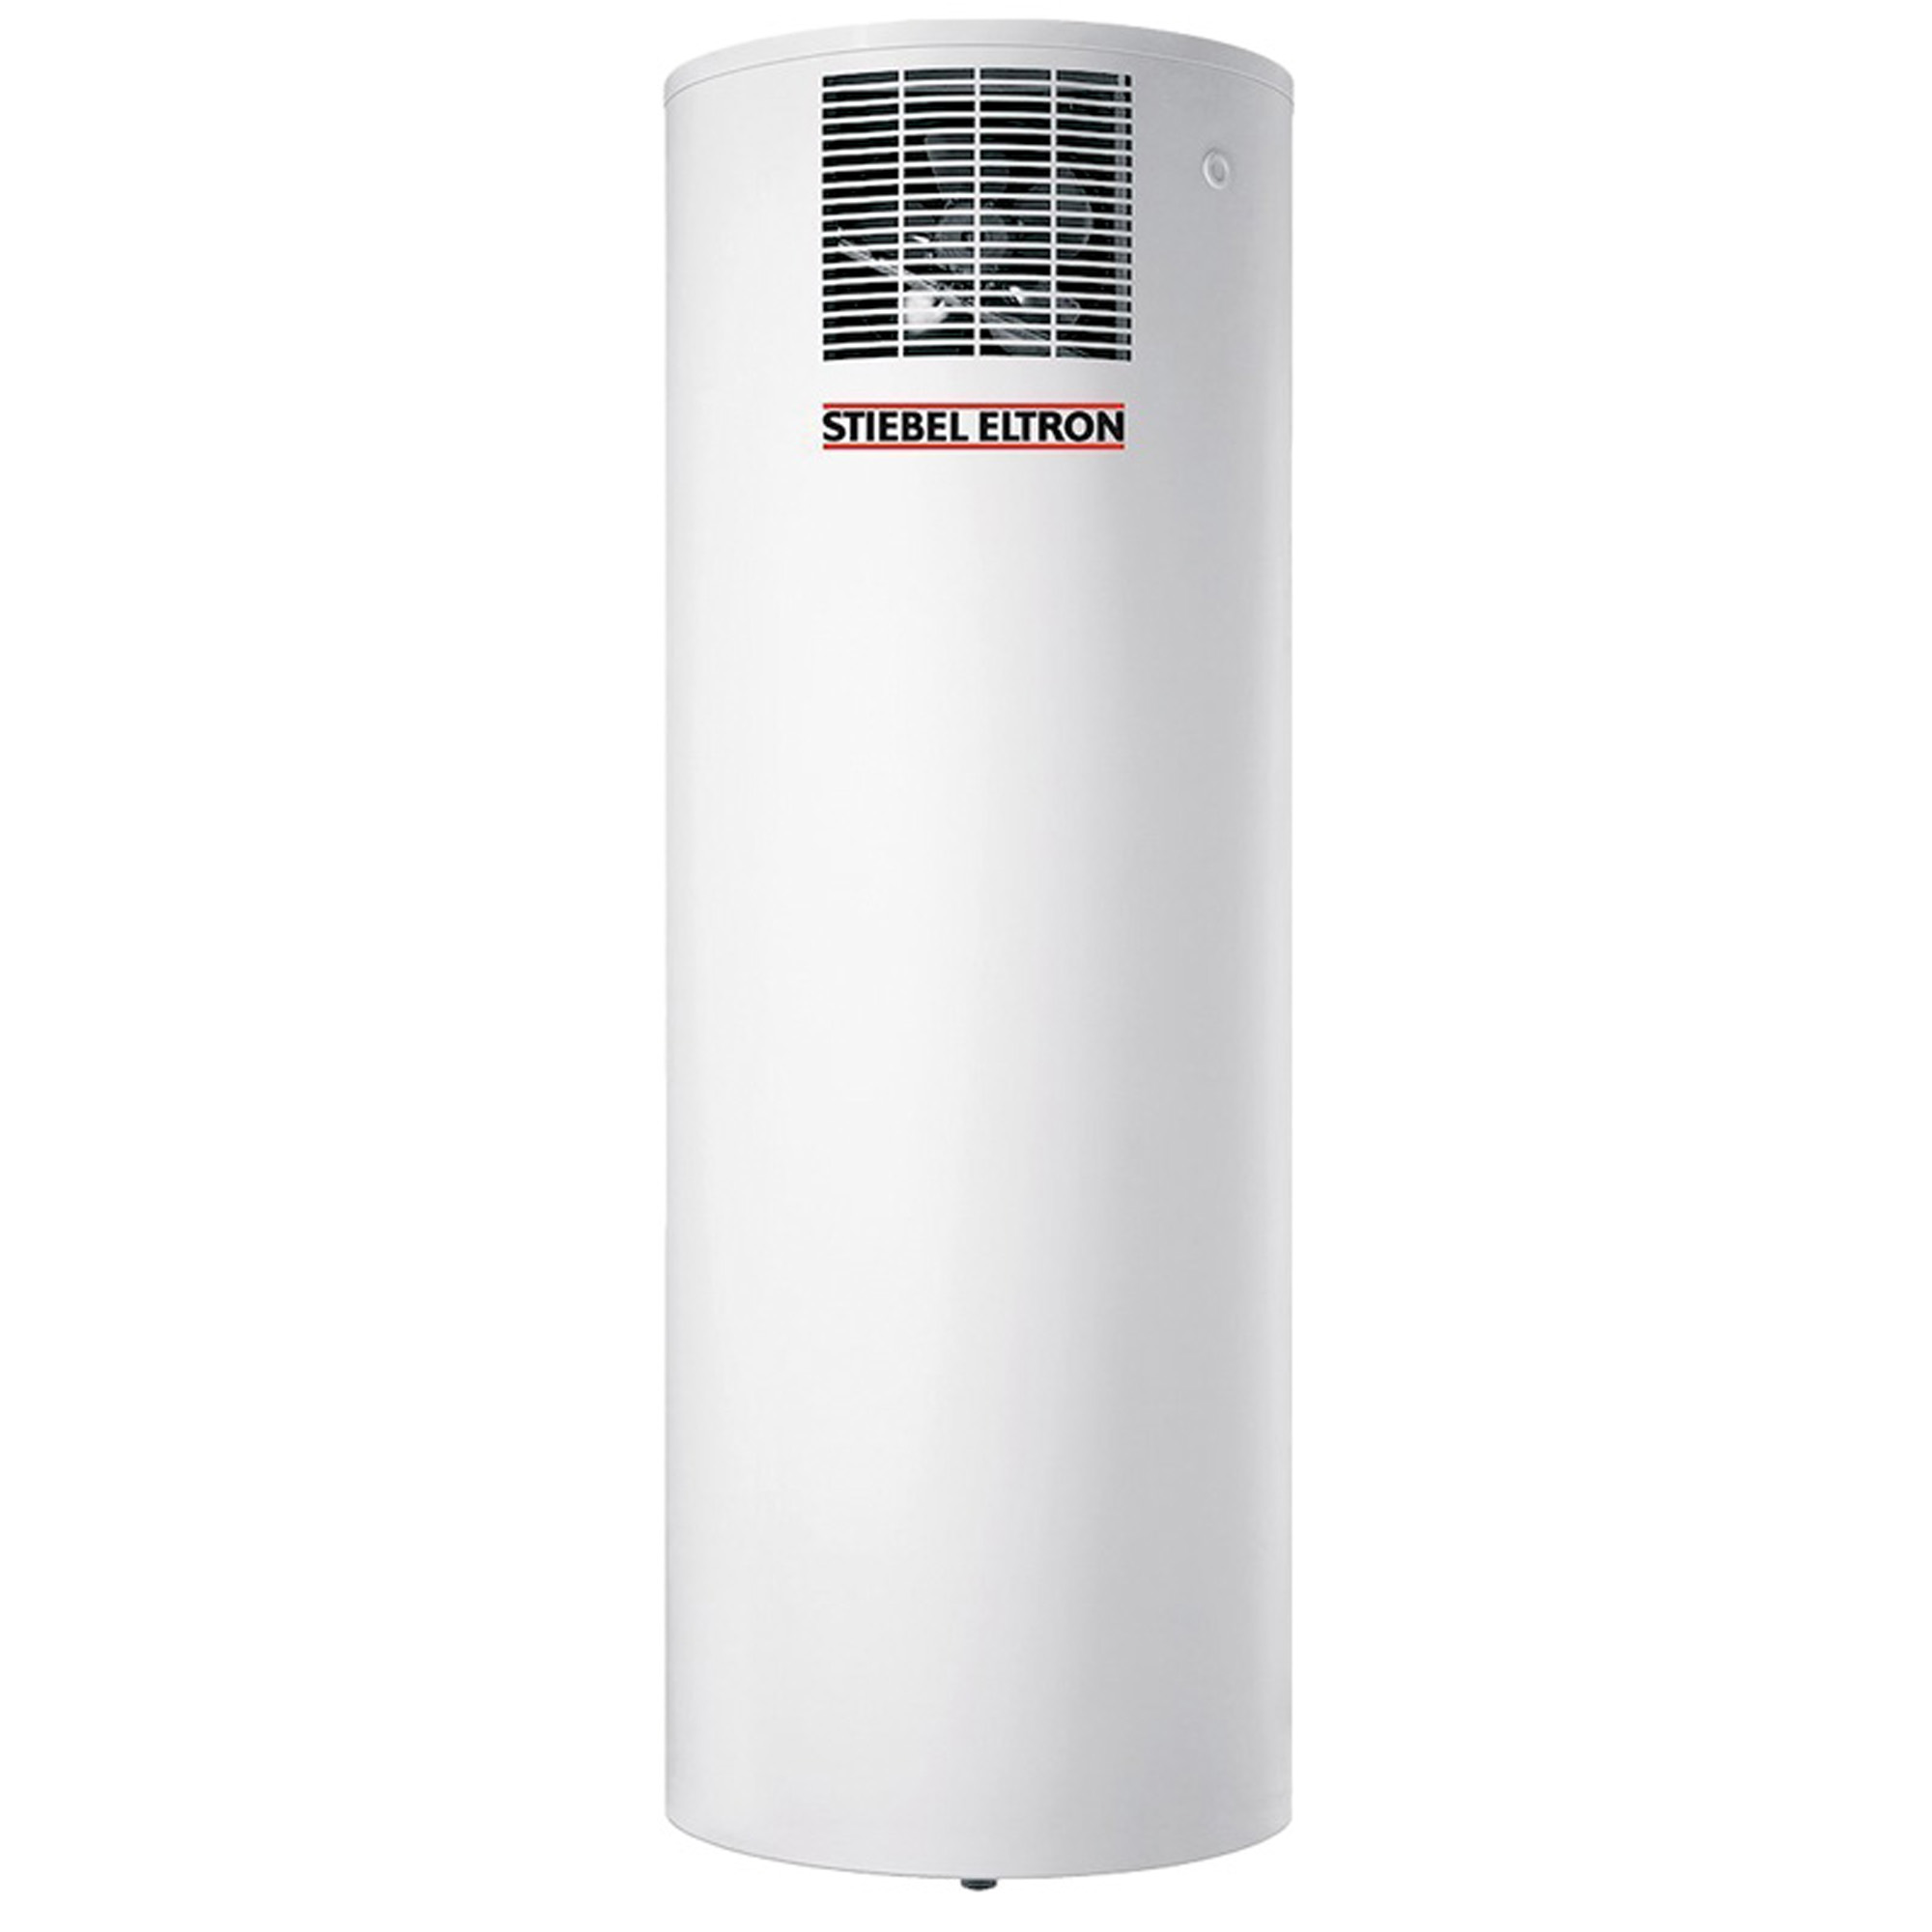 The Accelera from Stiebel-Eltron heats water by drawing on air in a basement or garage.